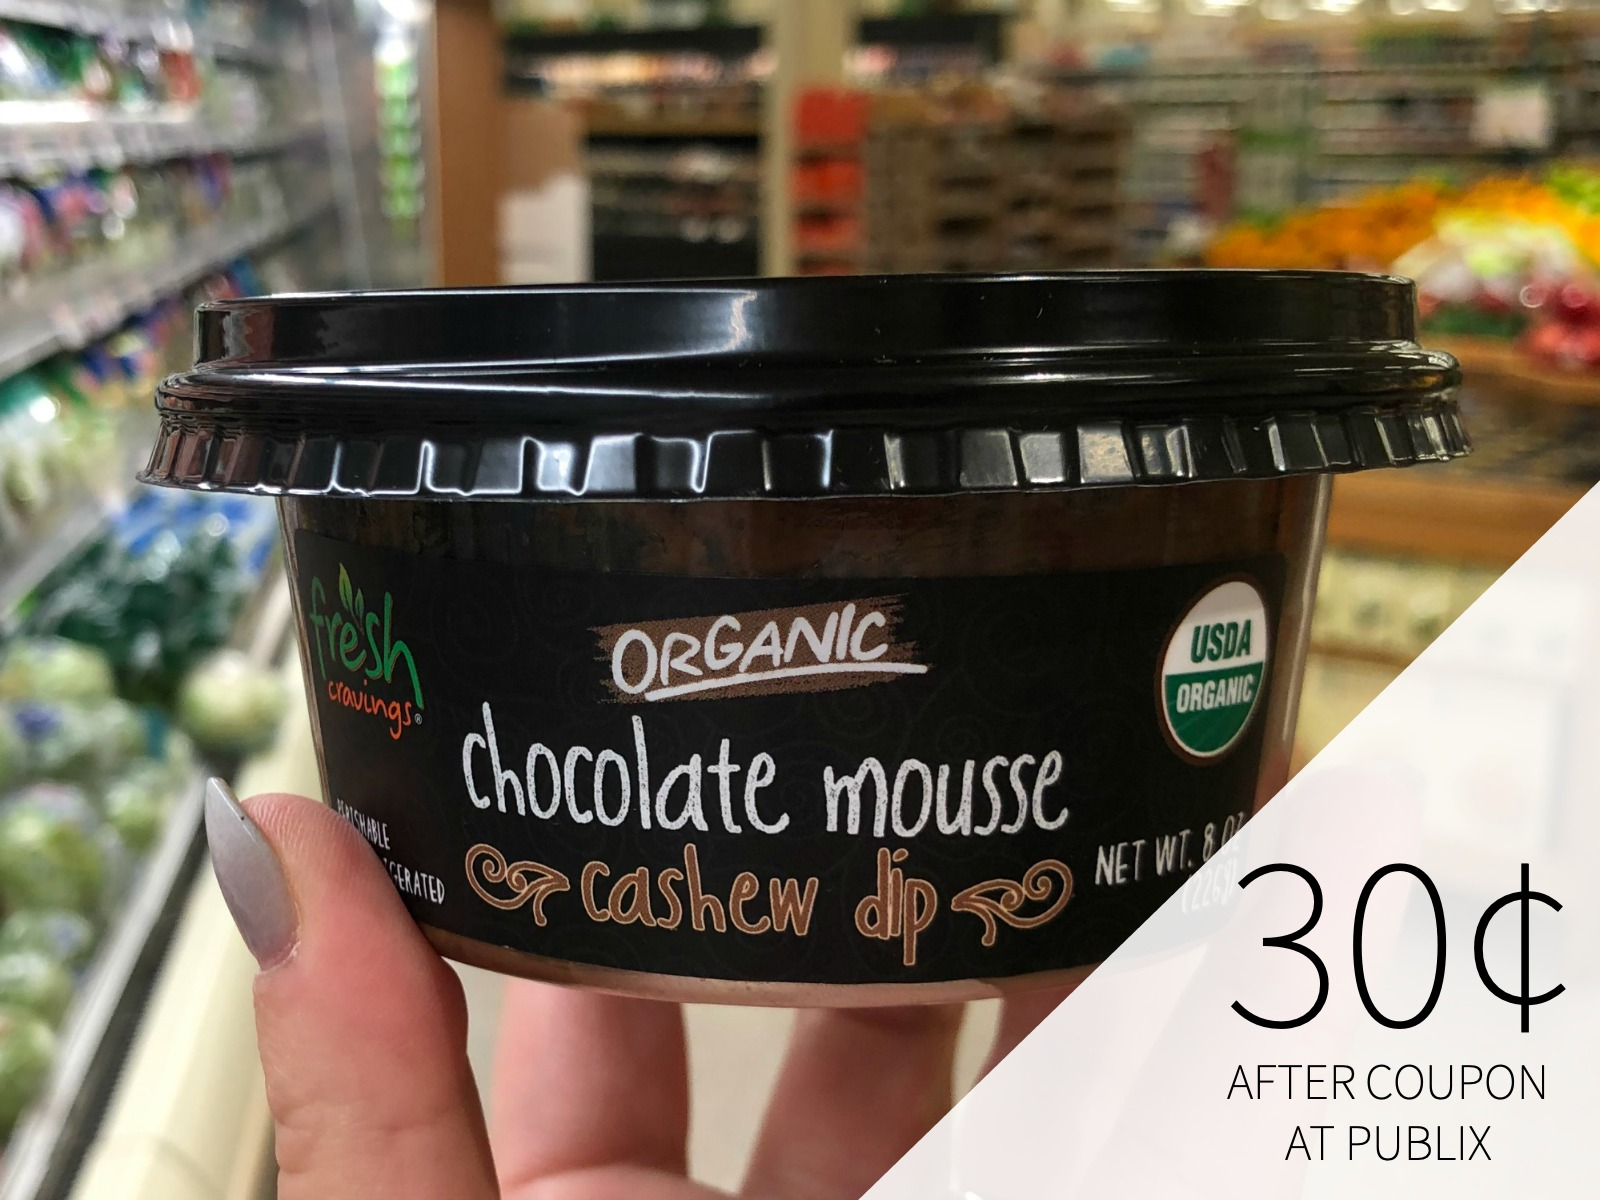 Fresh Cravings Organic Dip Only 30¢ At Publix on I Heart Publix 1